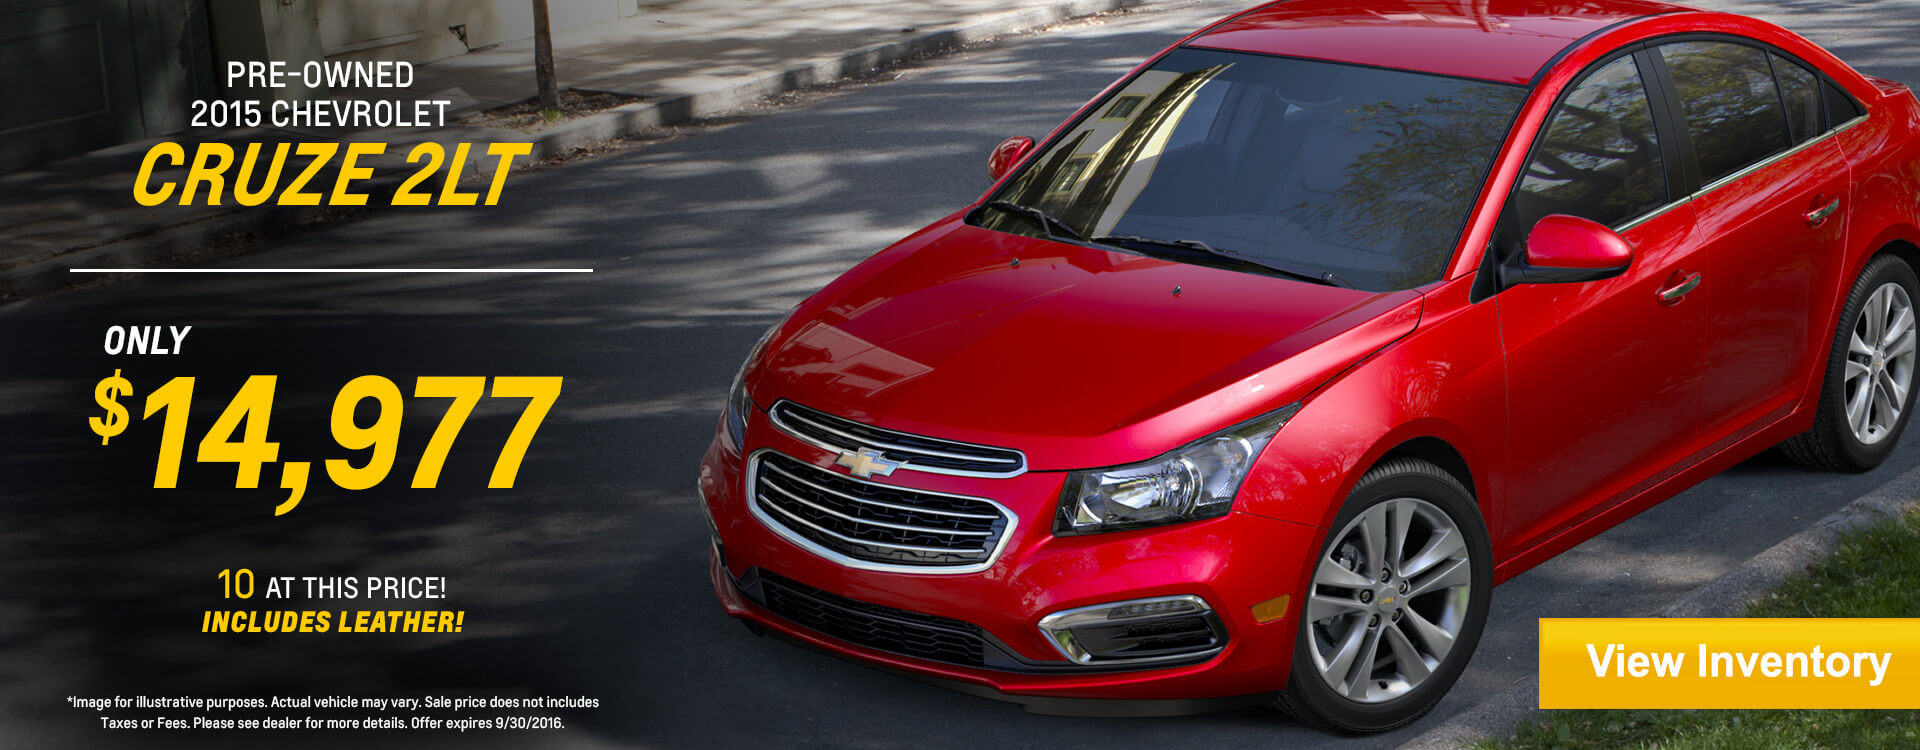 PreOwned Cruze